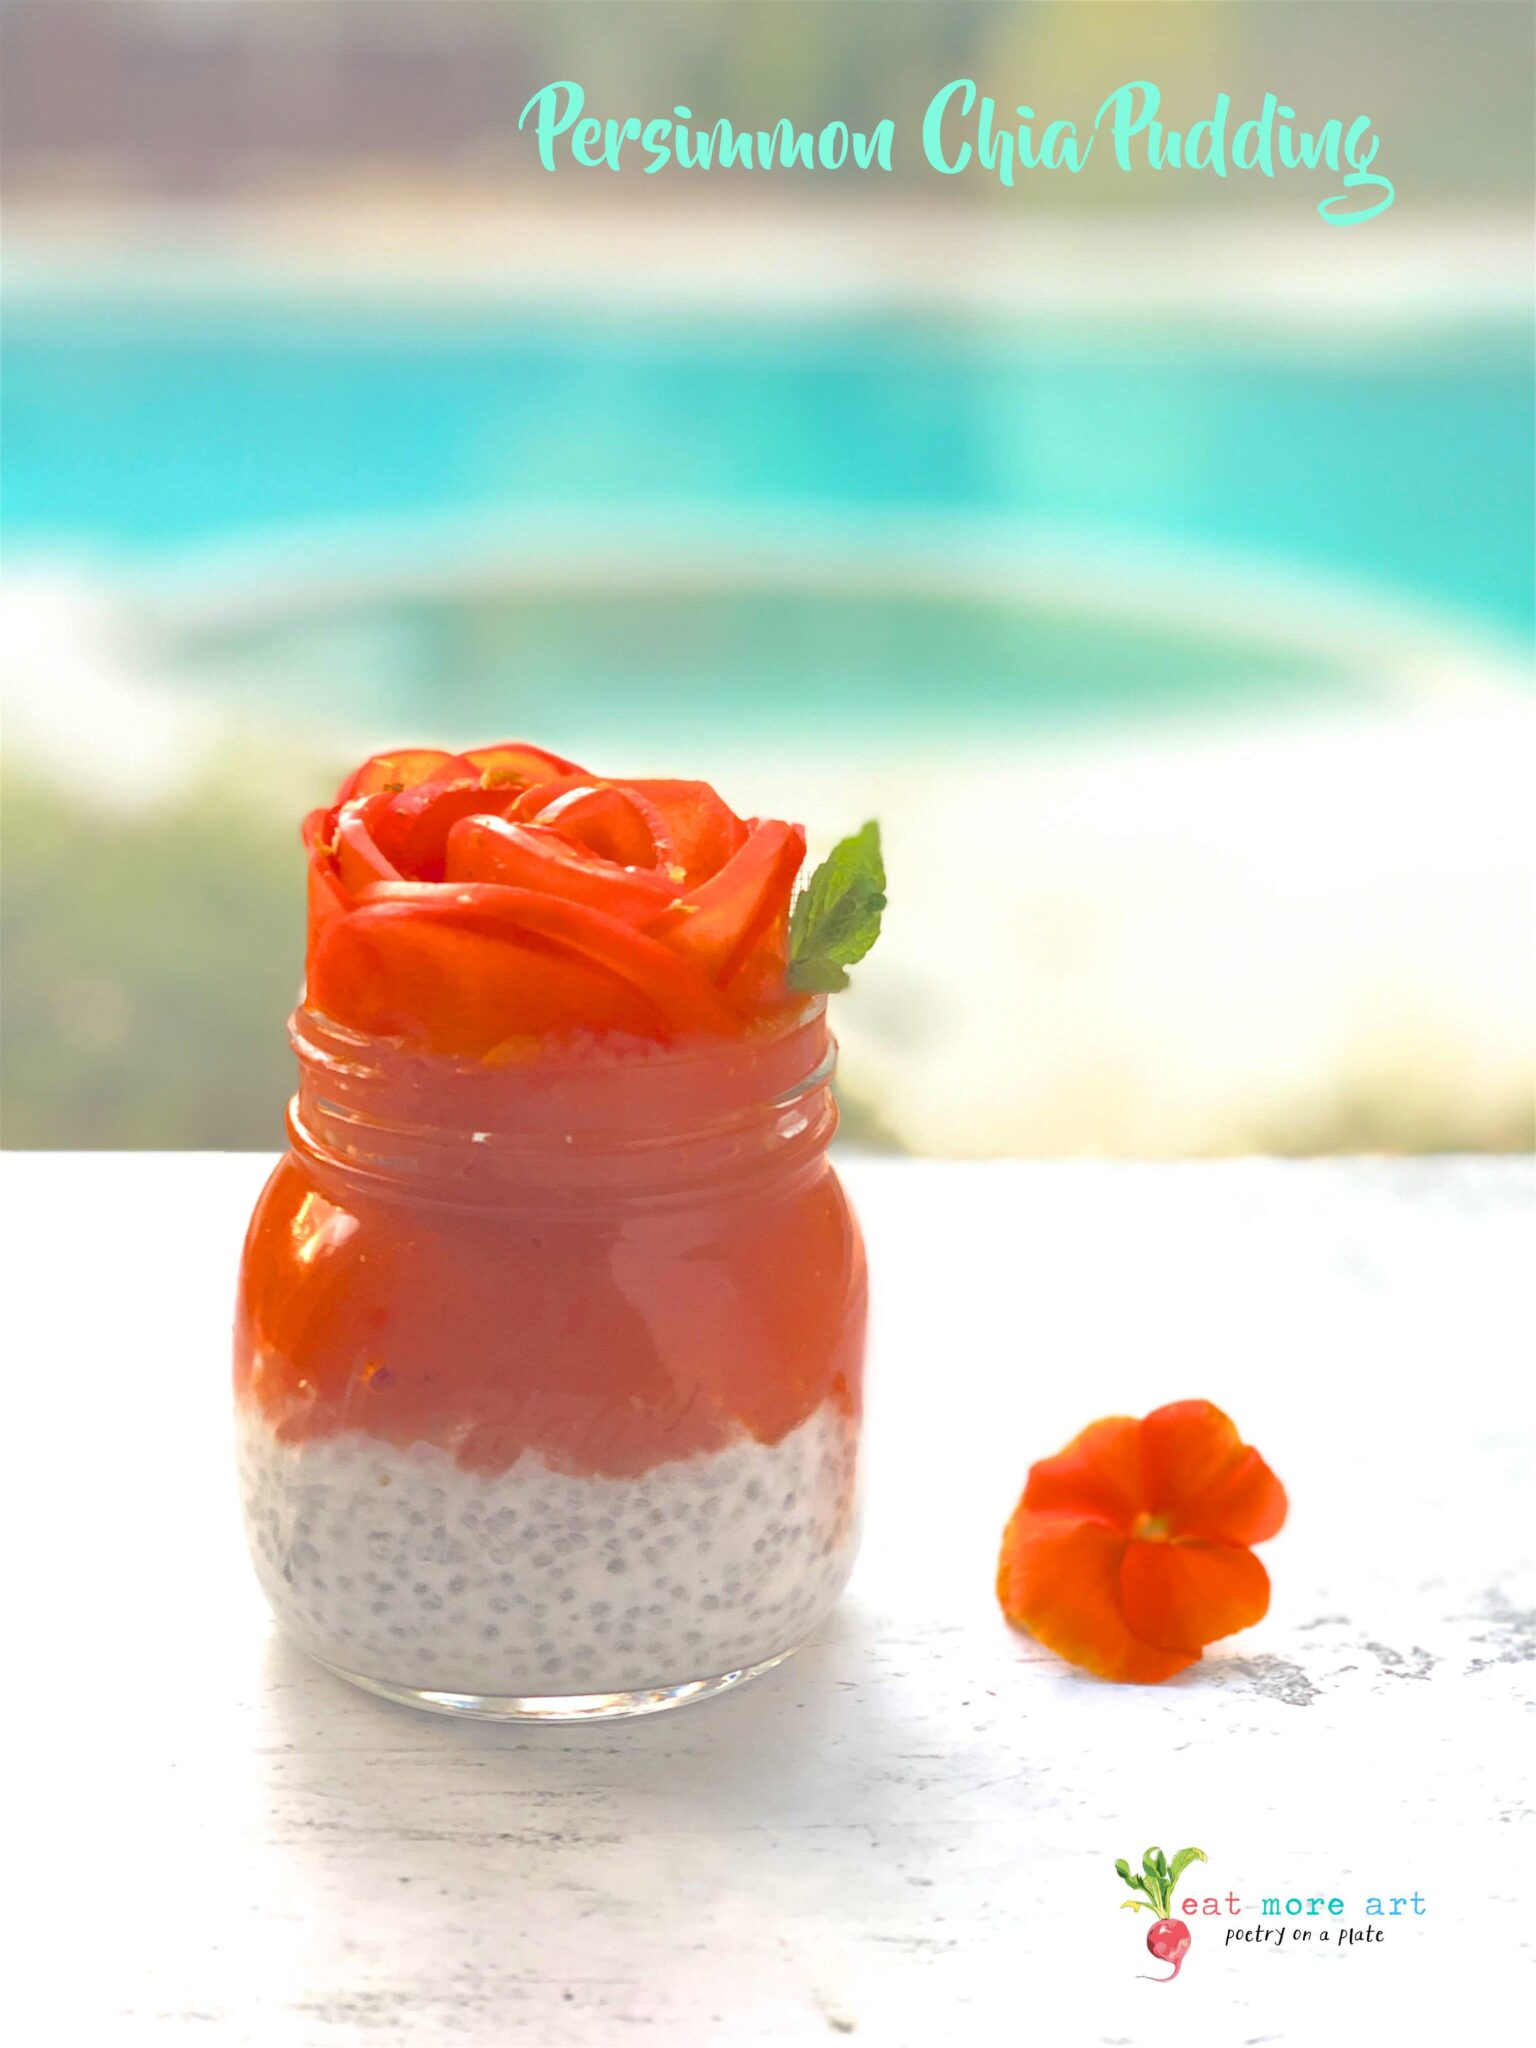 Persimmon Chia Coconut Breakfast Pudding